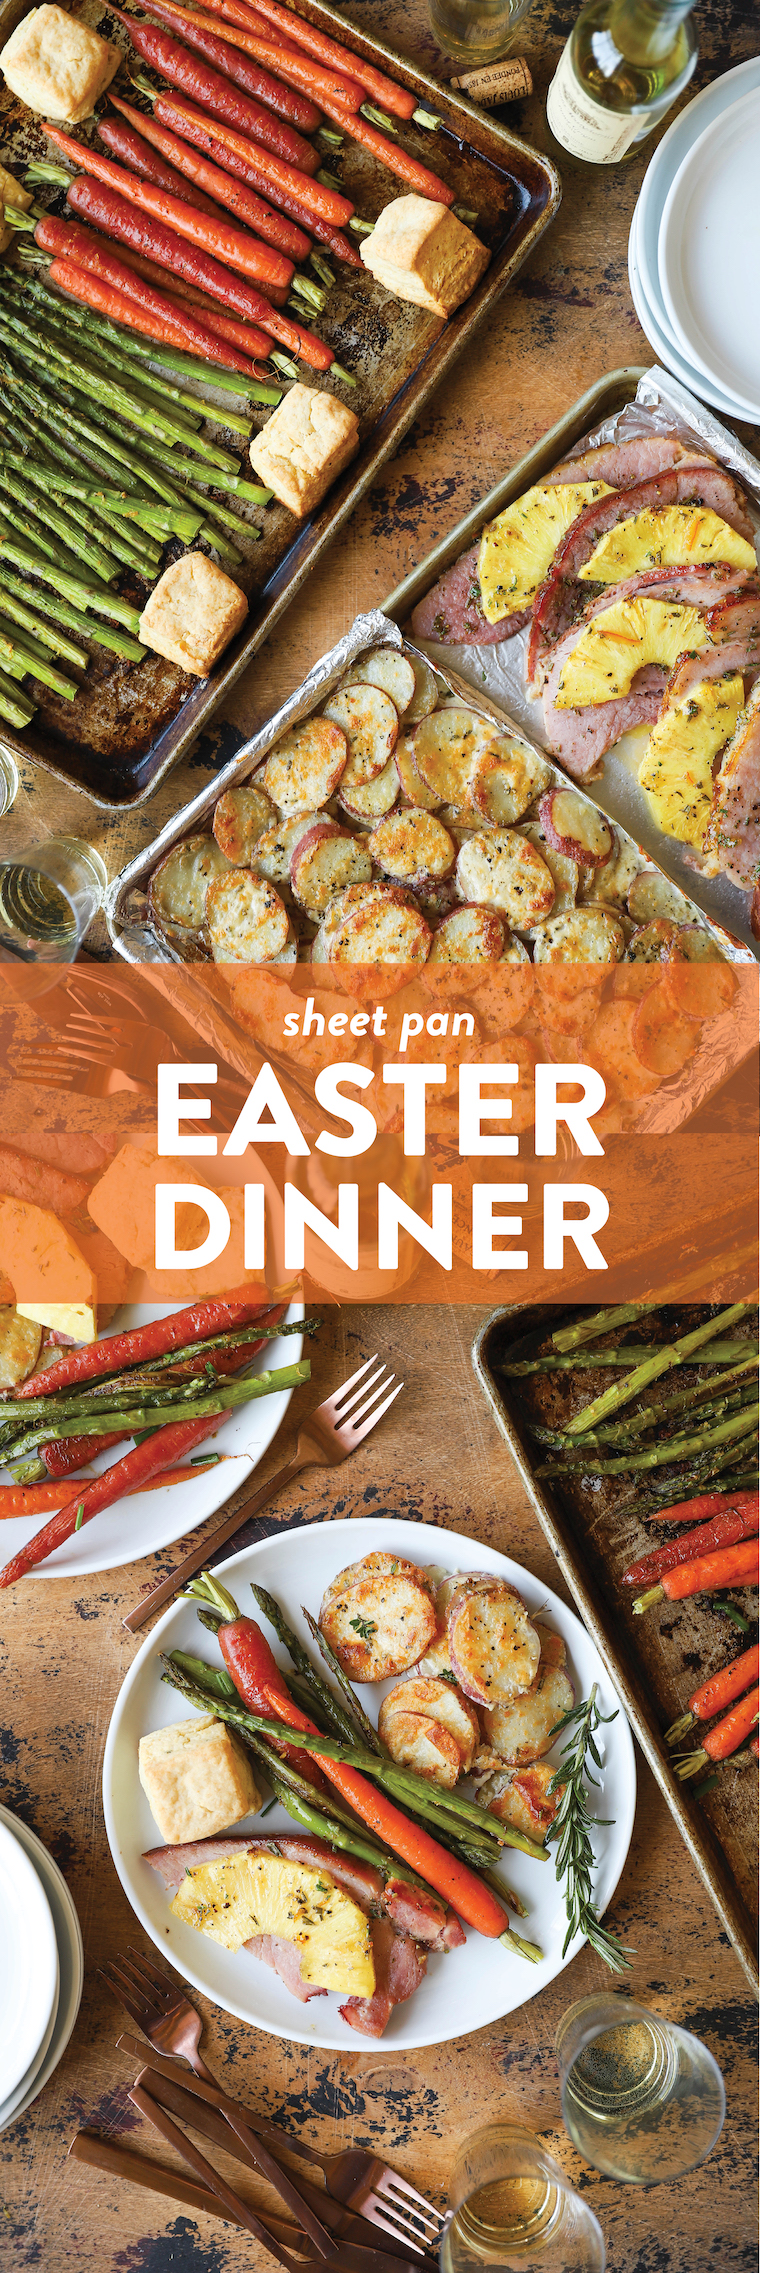 Sheet Pan Easter Dinner - Pineapple ham, scalloped potatoes, lemon garlic asparagus, honey roasted carrots, and fluffy mile-high biscuits on TWO SHEET PANS!